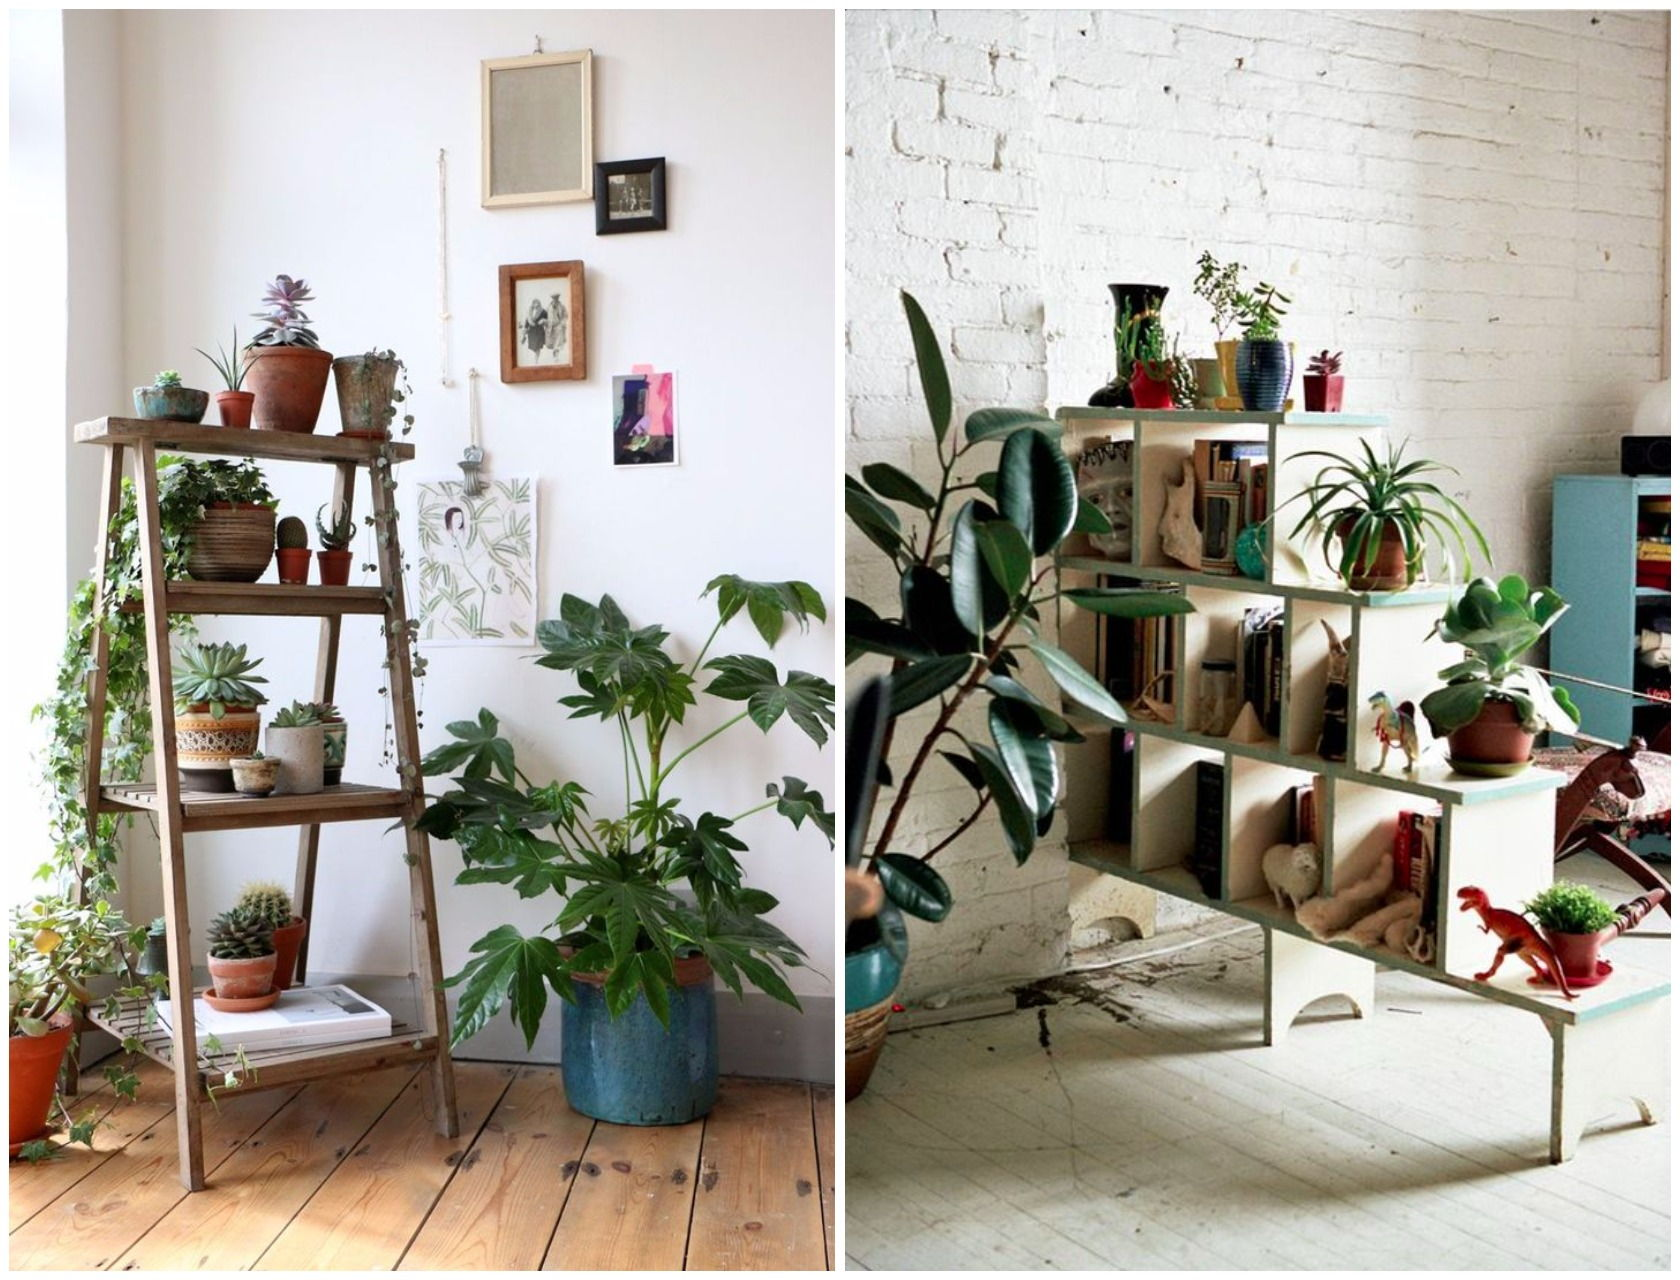 Home Decor With Indoor Plants Low Budget Interior Design